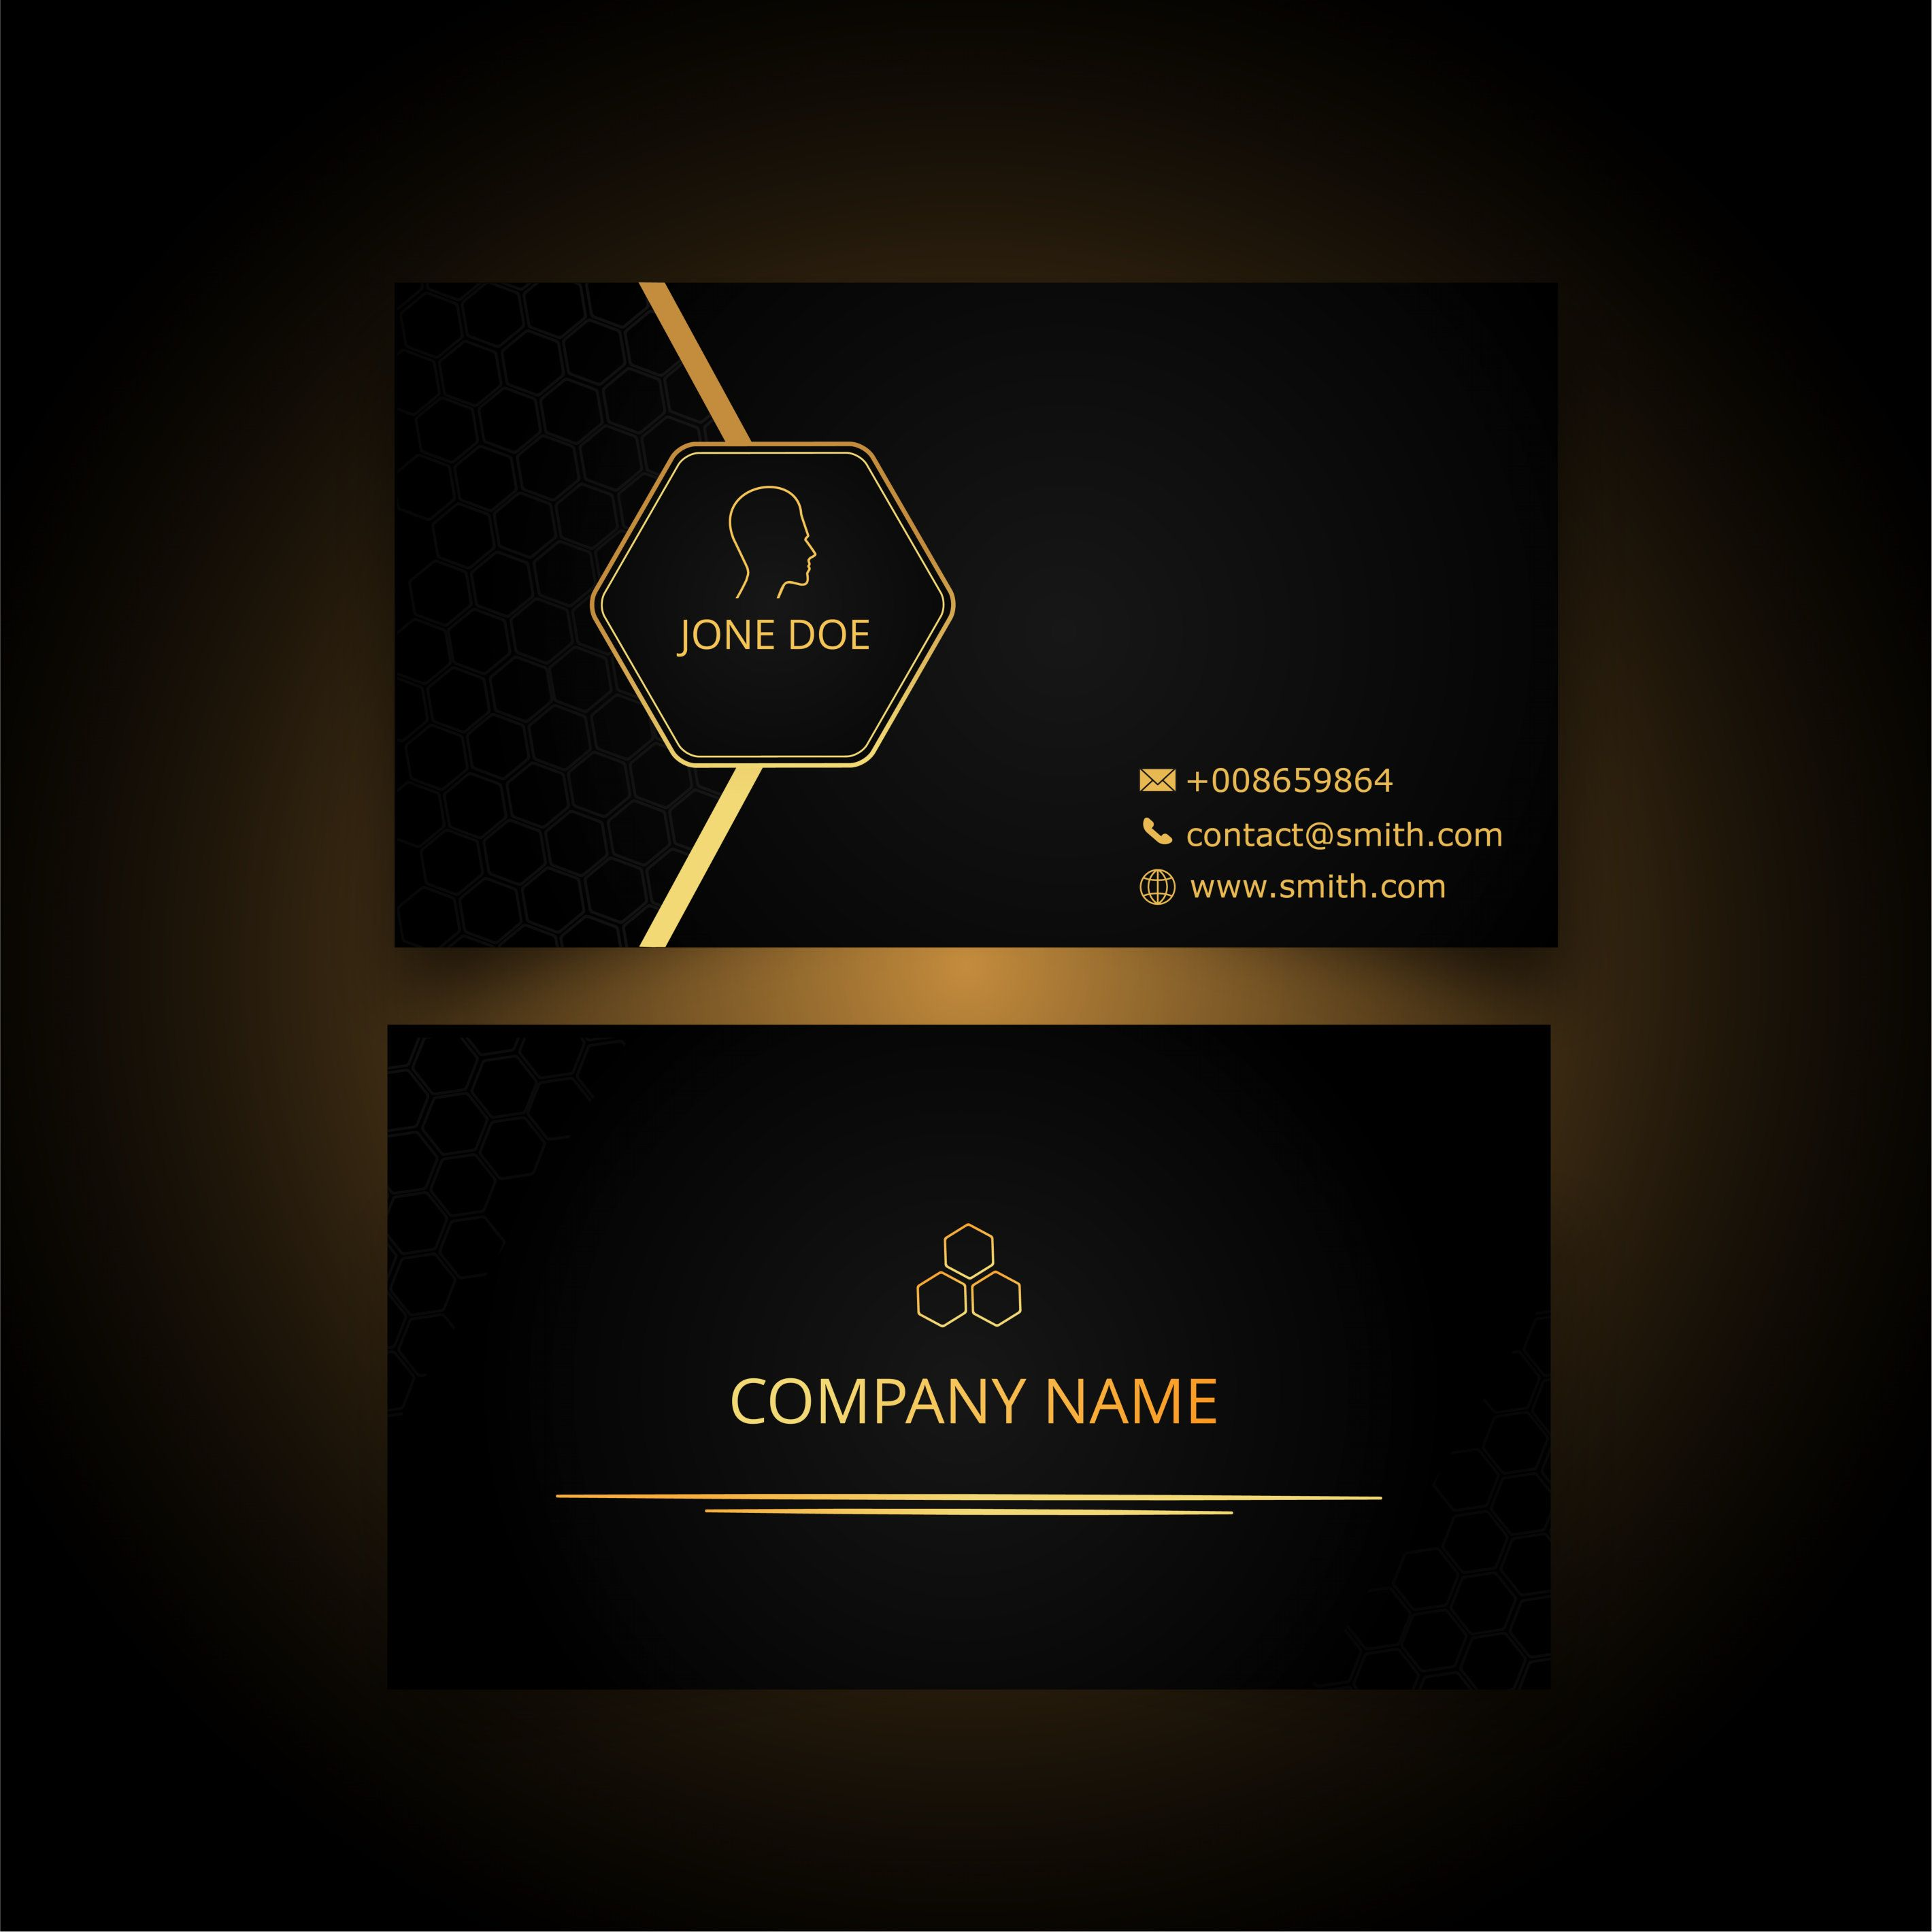 Modern Business Card Template Available On Freepik Freepik